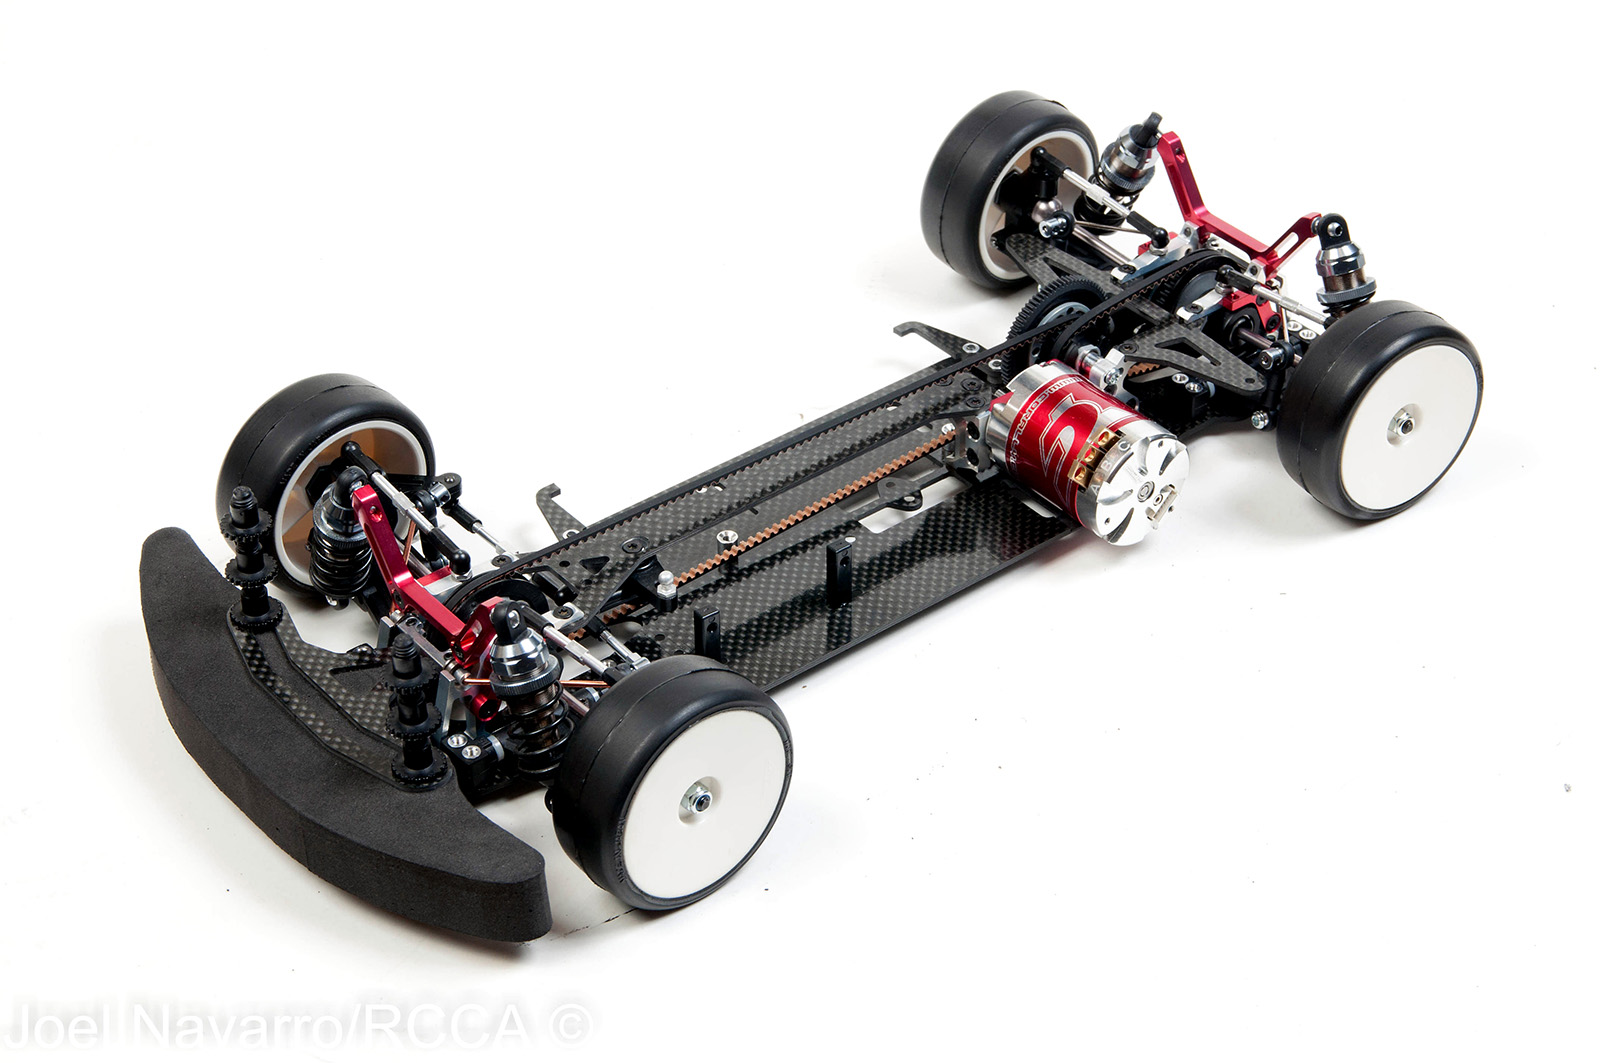 rc cars pictures with Index on F1 Future Mclaren Mp4 X 6 likewise Audi Virtual Training Car Pictures as well 7 Toyota Soarer Vertex Edition furthermore Attachment additionally Cars reviews Peugeot Rc.